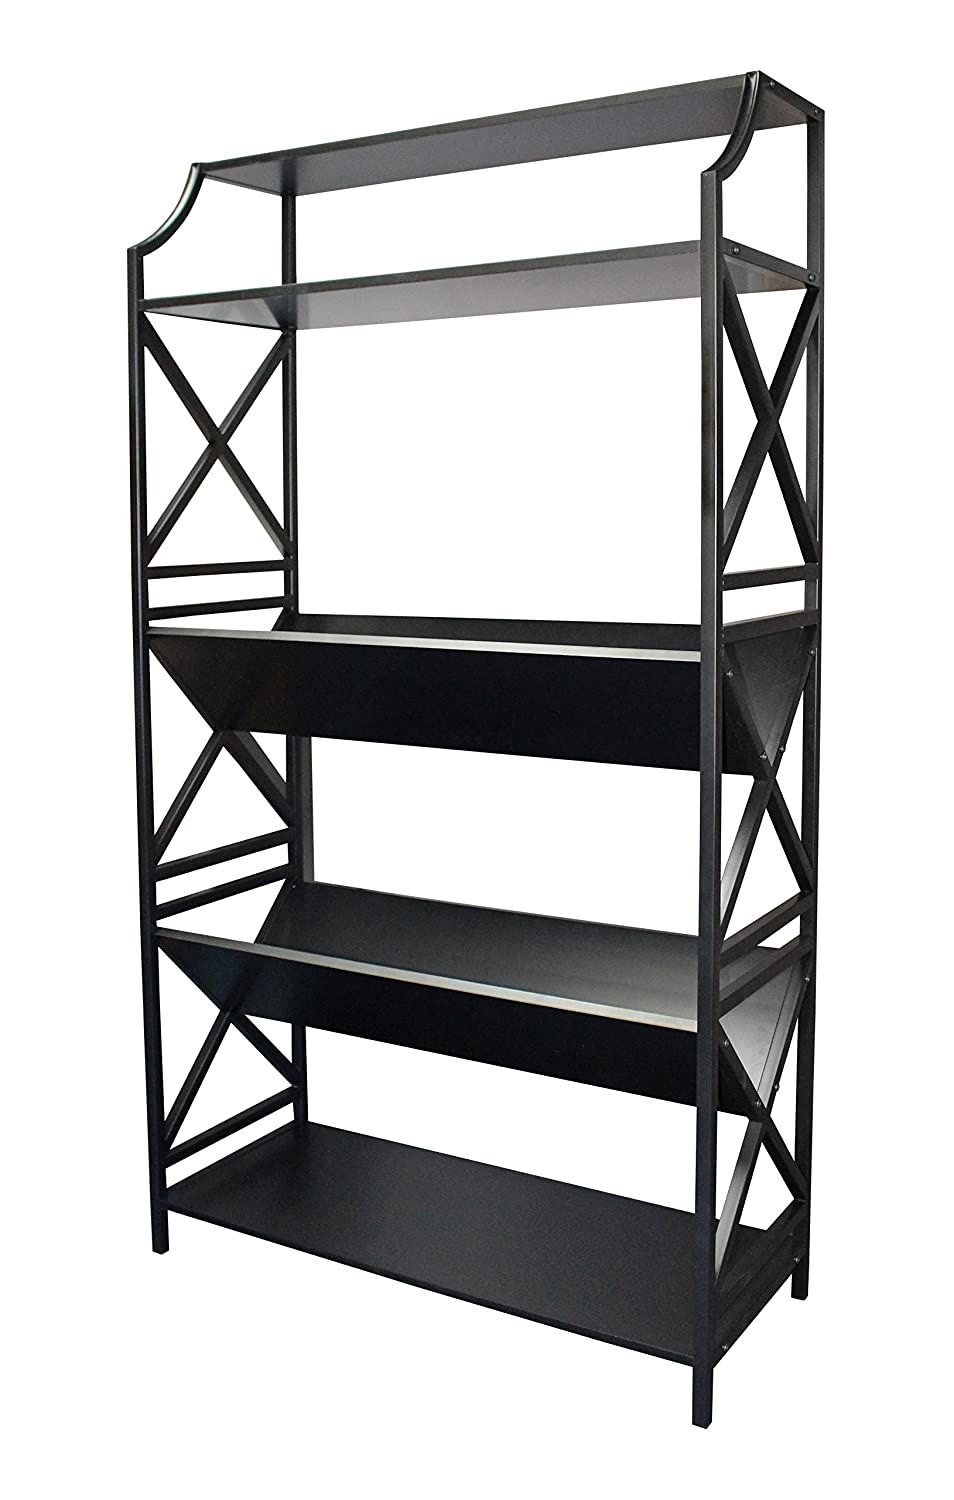 Ehemco 5 Shelf Metal Bookcase With 2 Shelves On A Slant V Shape And X Sides In 2020 Metal Bookcase Home Office Furniture Shelves